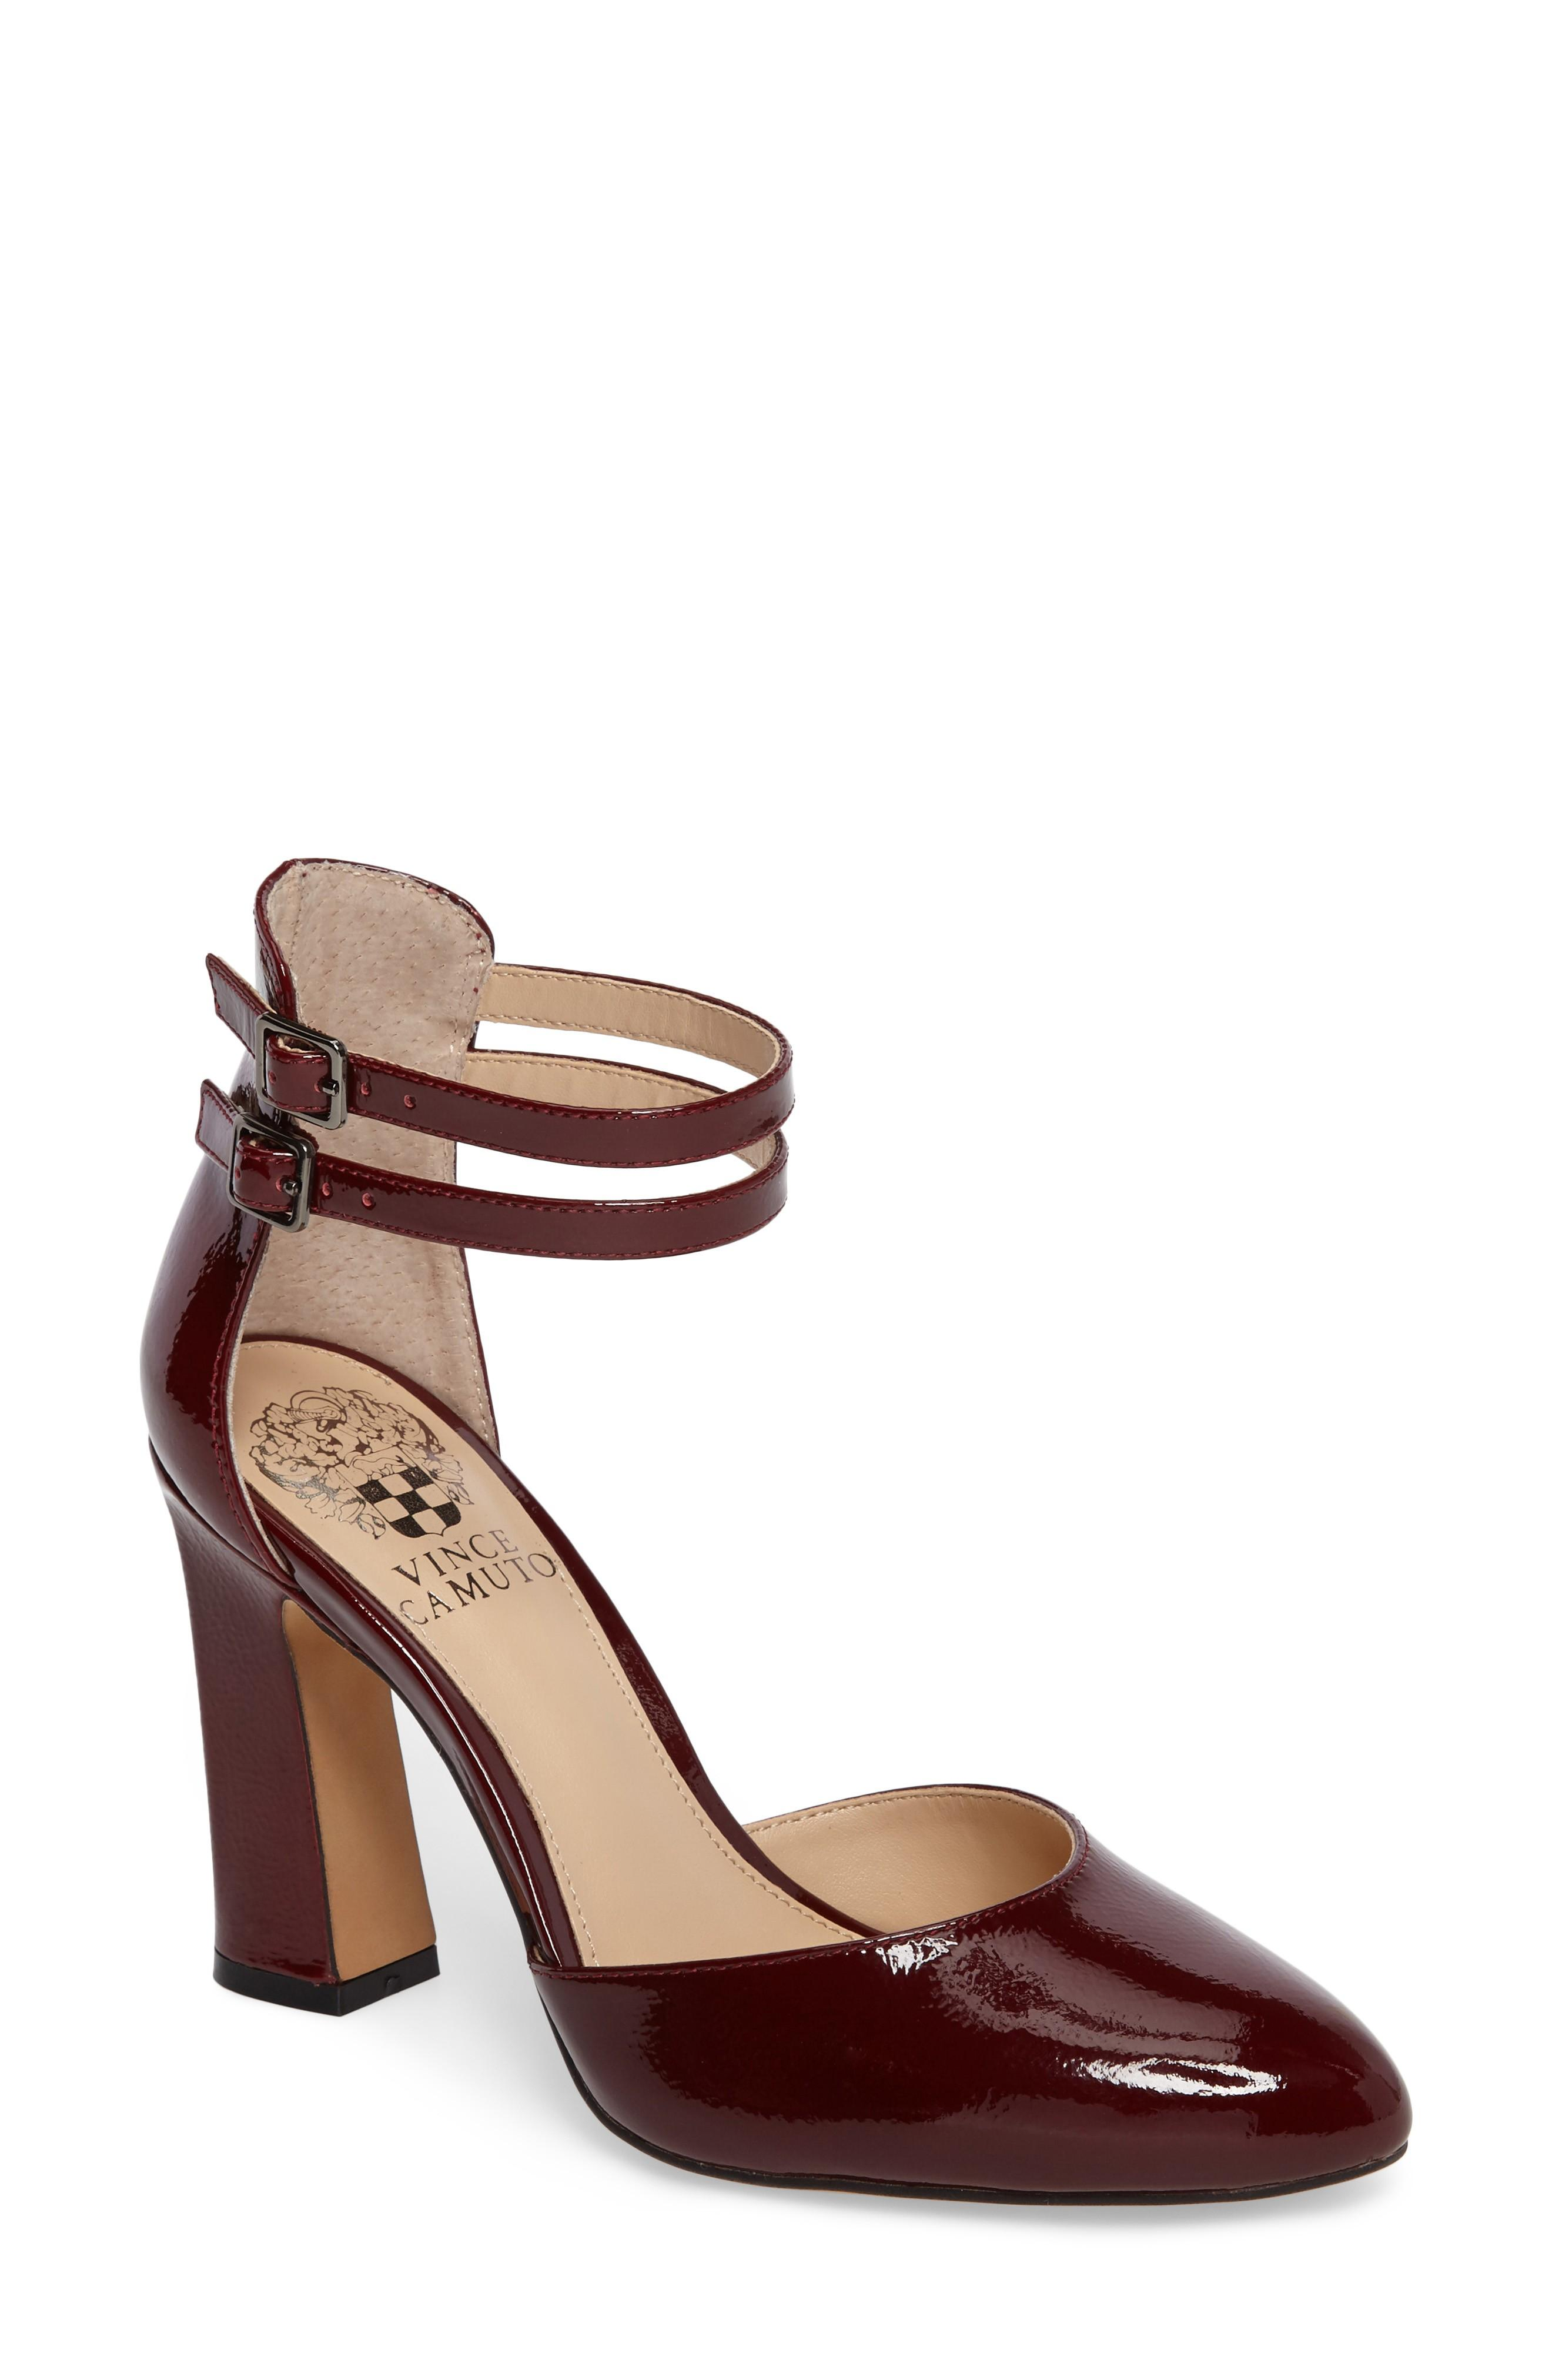 Vince Camuto Dorinda Pump In Red Patent Leather Modesens